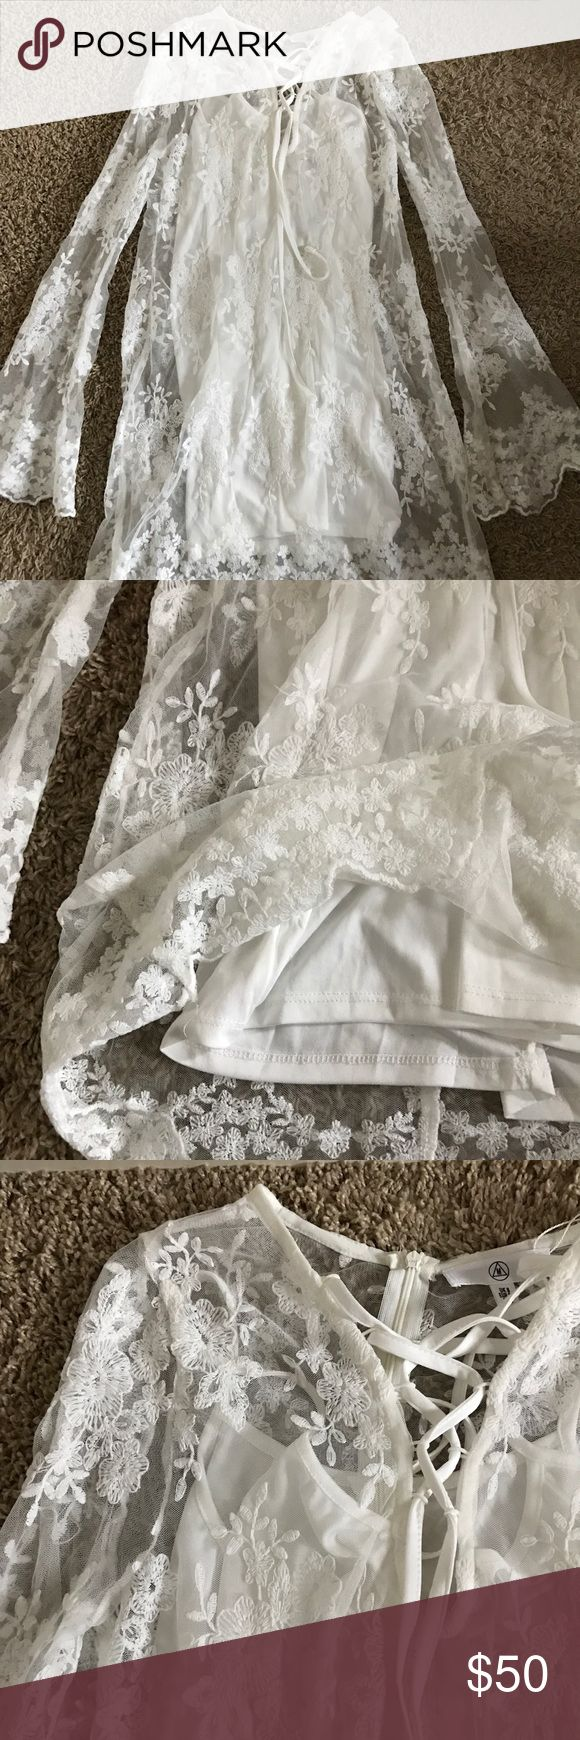 Missguided White Floral Dress -New with tags -See through top layer with another bottom layer -Floral pattern -Long sleeved and thigh length -Size 4 Missguided Dresses Long Sleeve